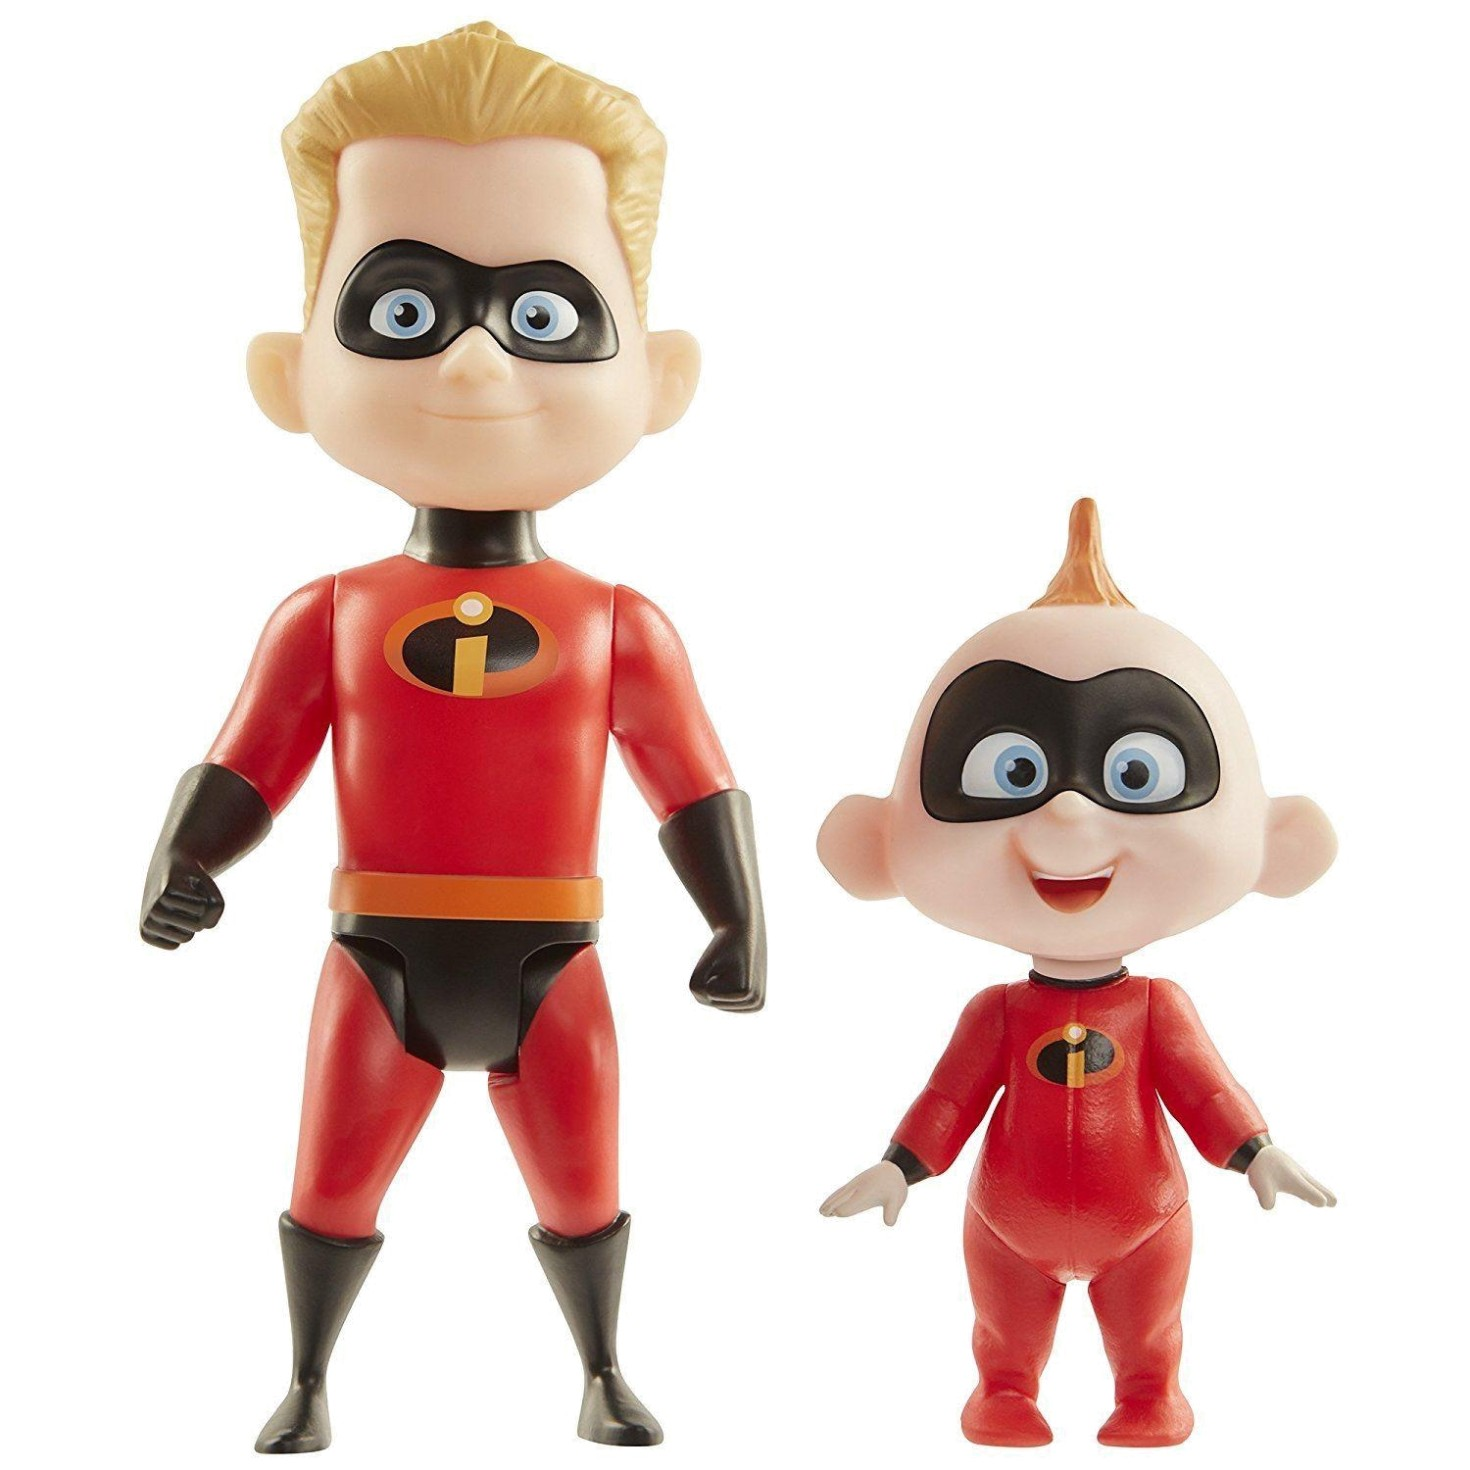 INCREDIBLES 2 JACK-JACK